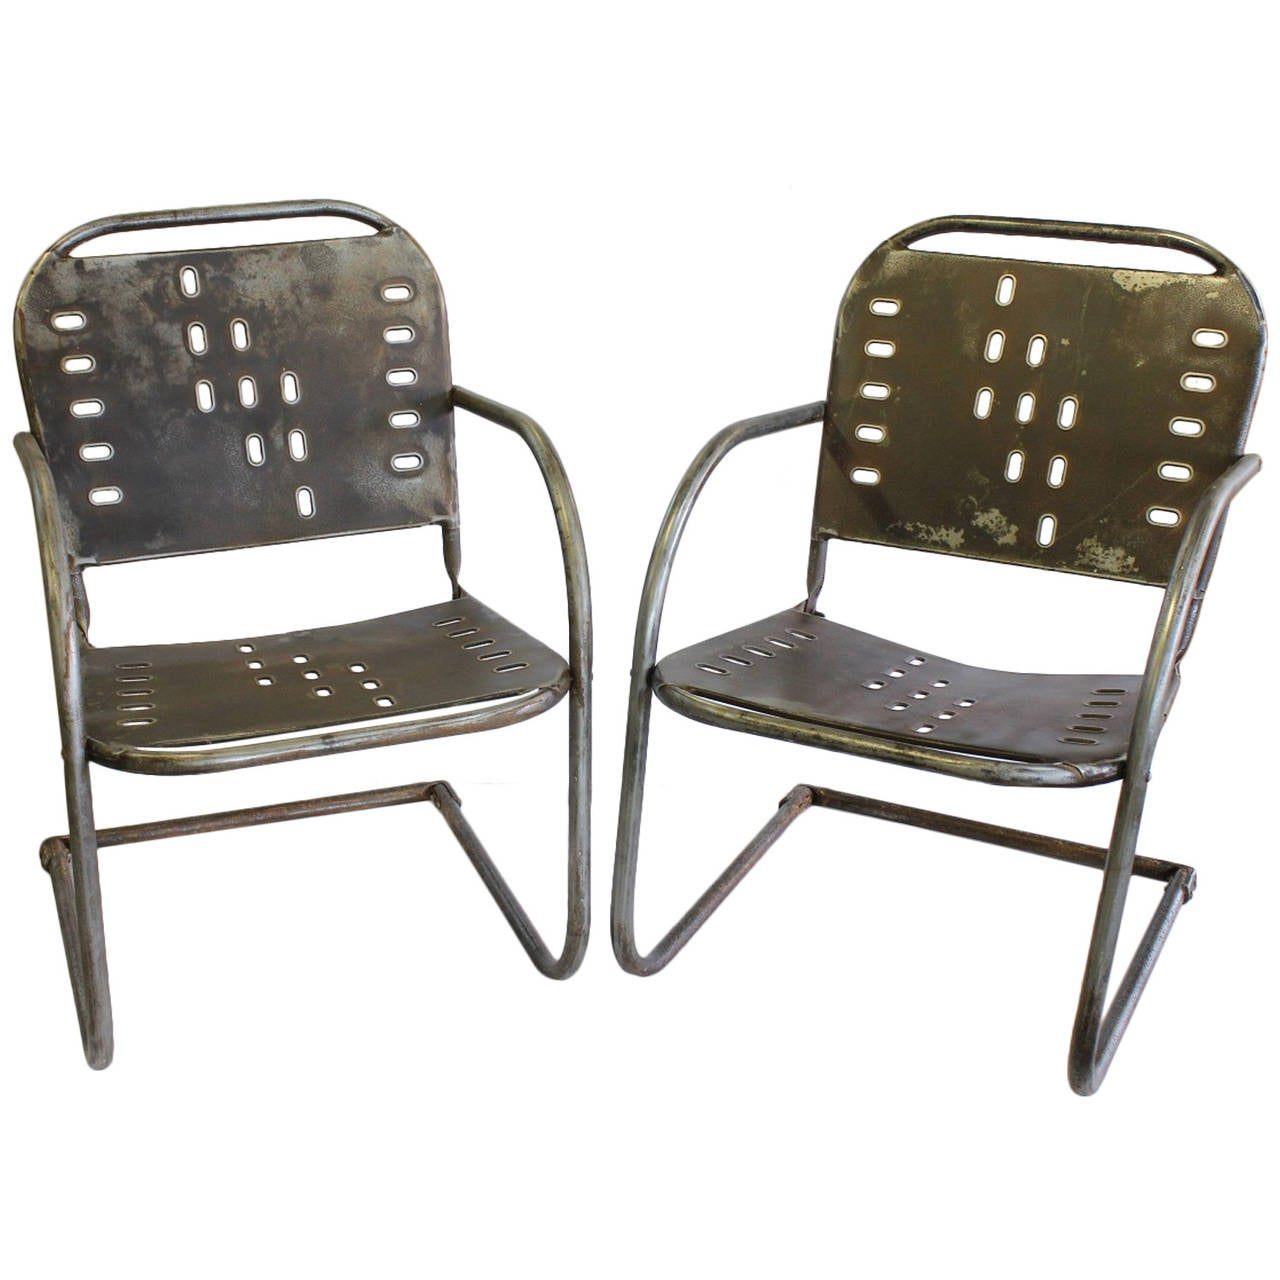 Metal Garden Chairs Mid Century Garden Metal Lounge Chairs At 1stdibs